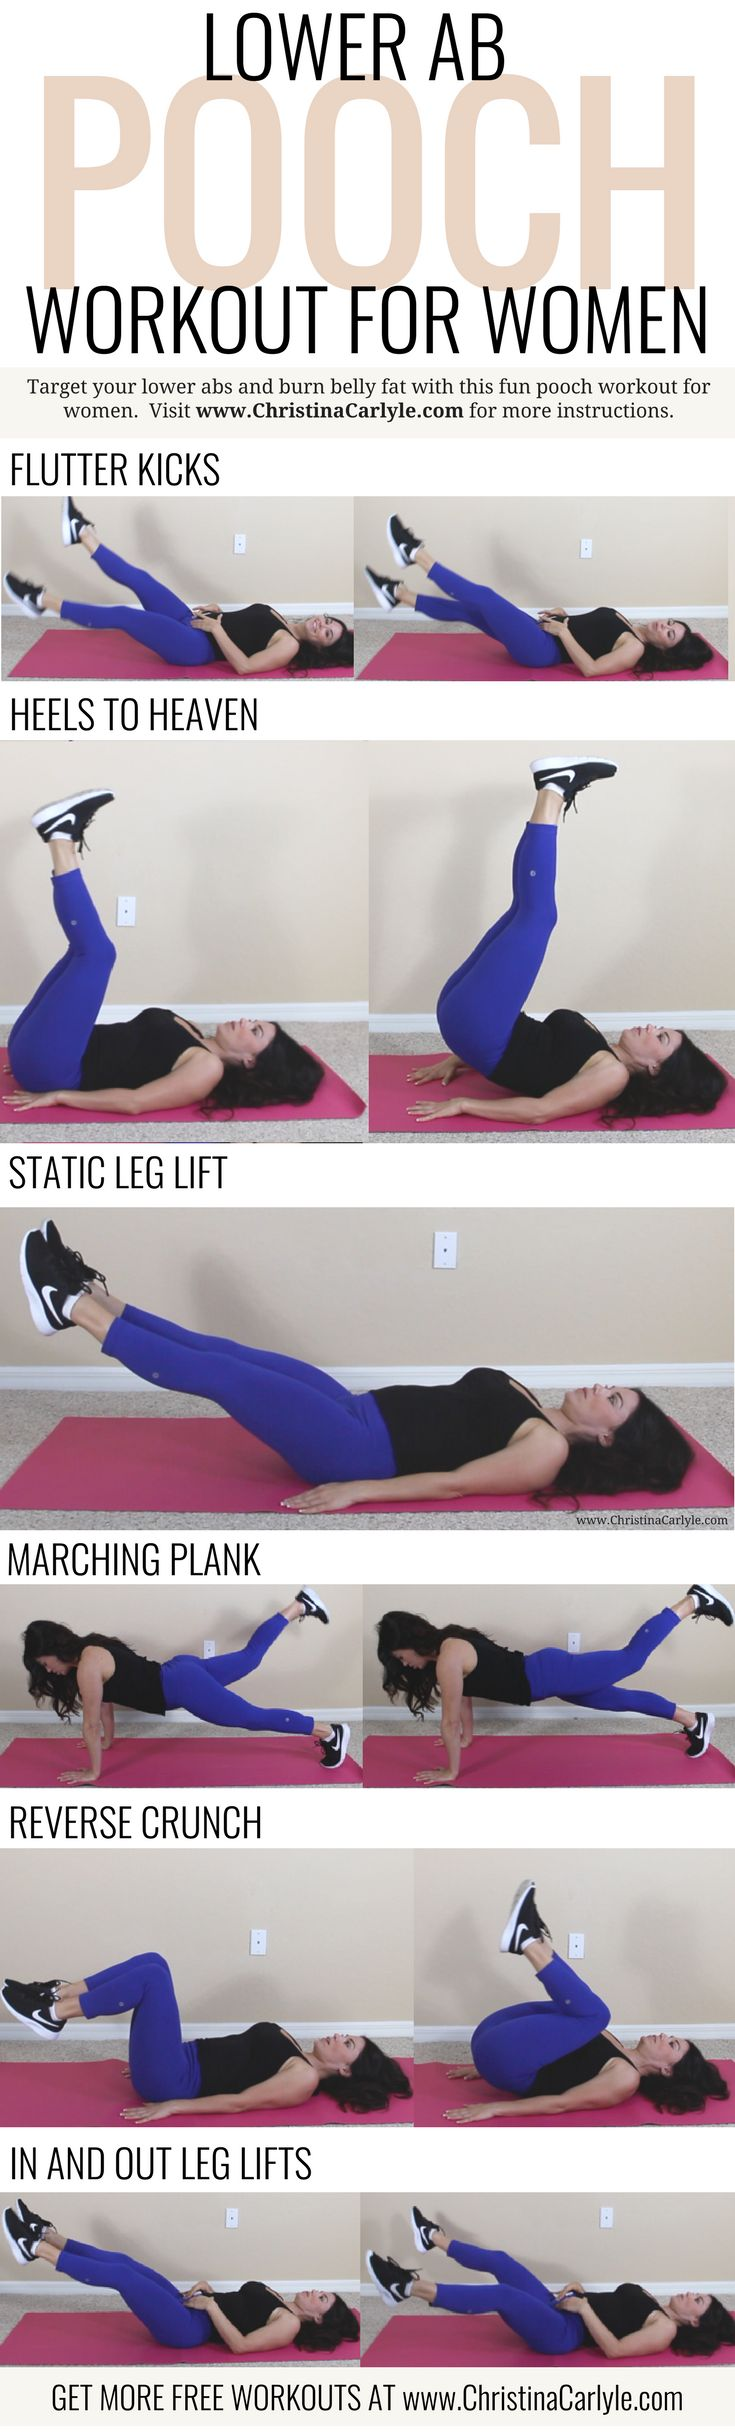 Lower Ab Exercises – Workout for Women | Posted By: NewHowToLoseBellyFat.com